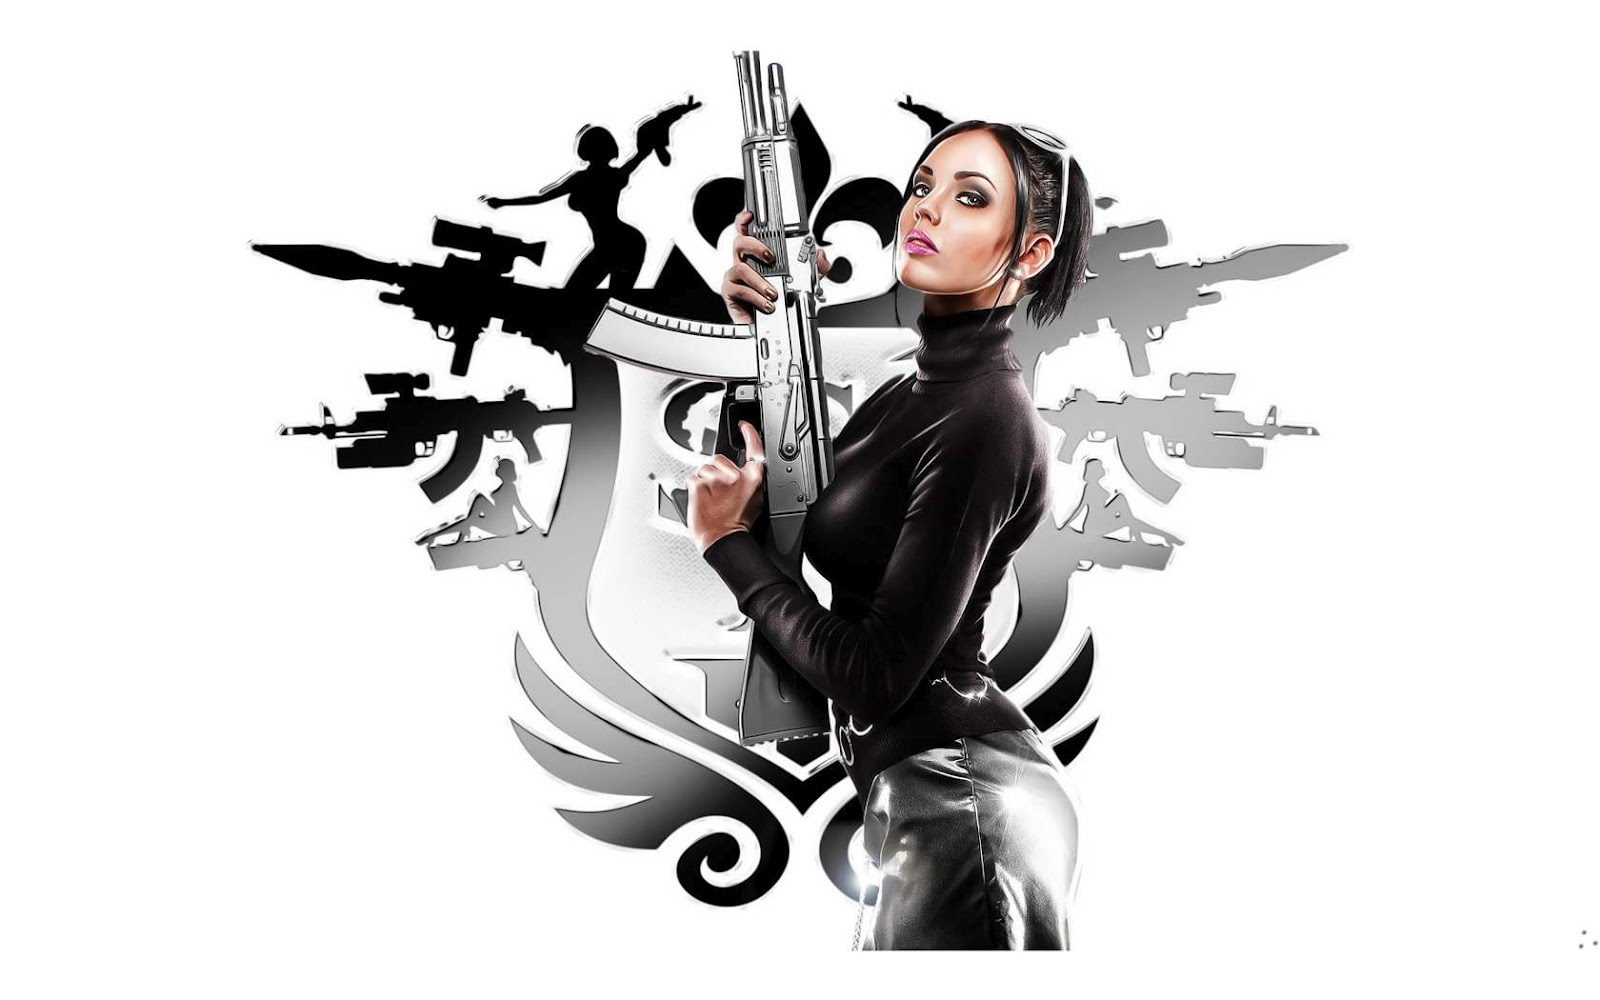 http://2.bp.blogspot.com/-wQ-zbwwN1hA/T4K4EeH3P1I/AAAAAAAABNw/tsVVBcPkePs/s1600/Saint_Row_wow_Viola_DeWynter_with_AK-47_HD_Video_Game_Wallpaper-gWb.jpg